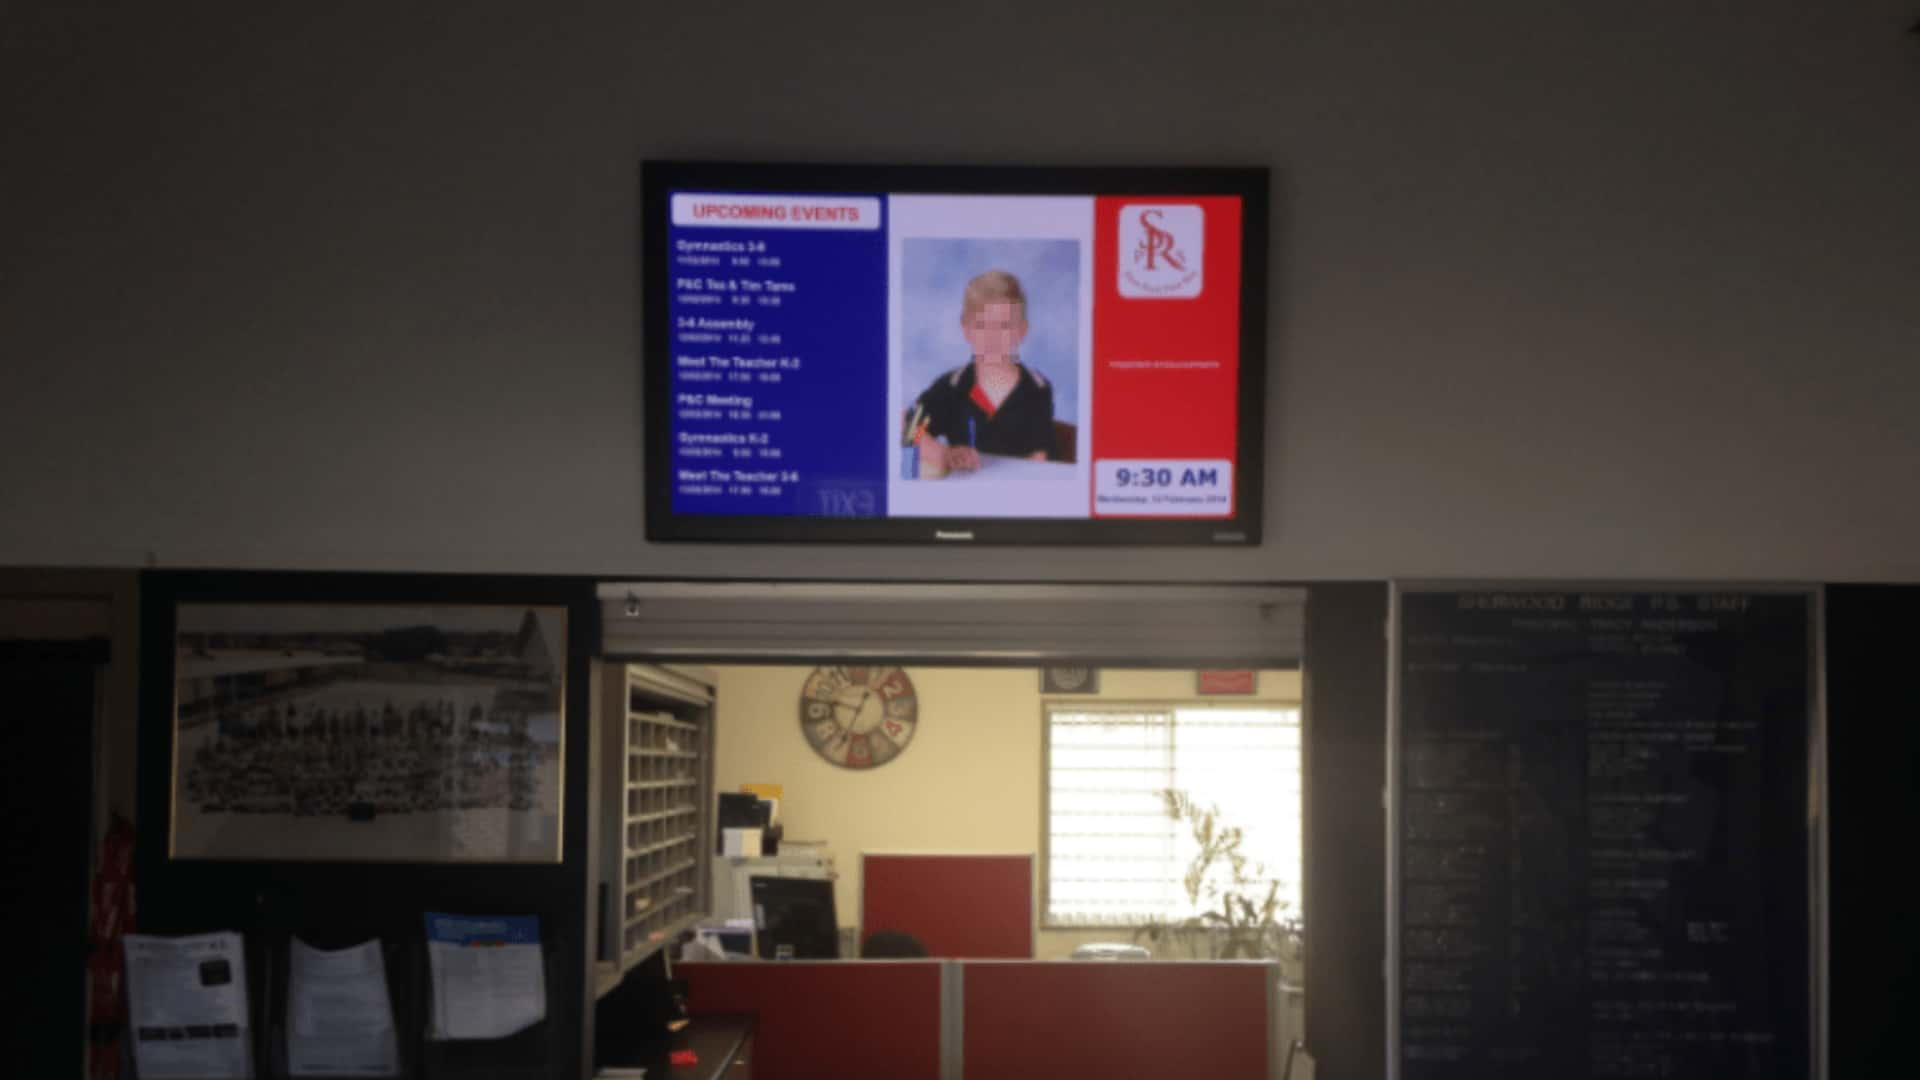 Digital Signage – Sherwood Ridge Public School Education Board